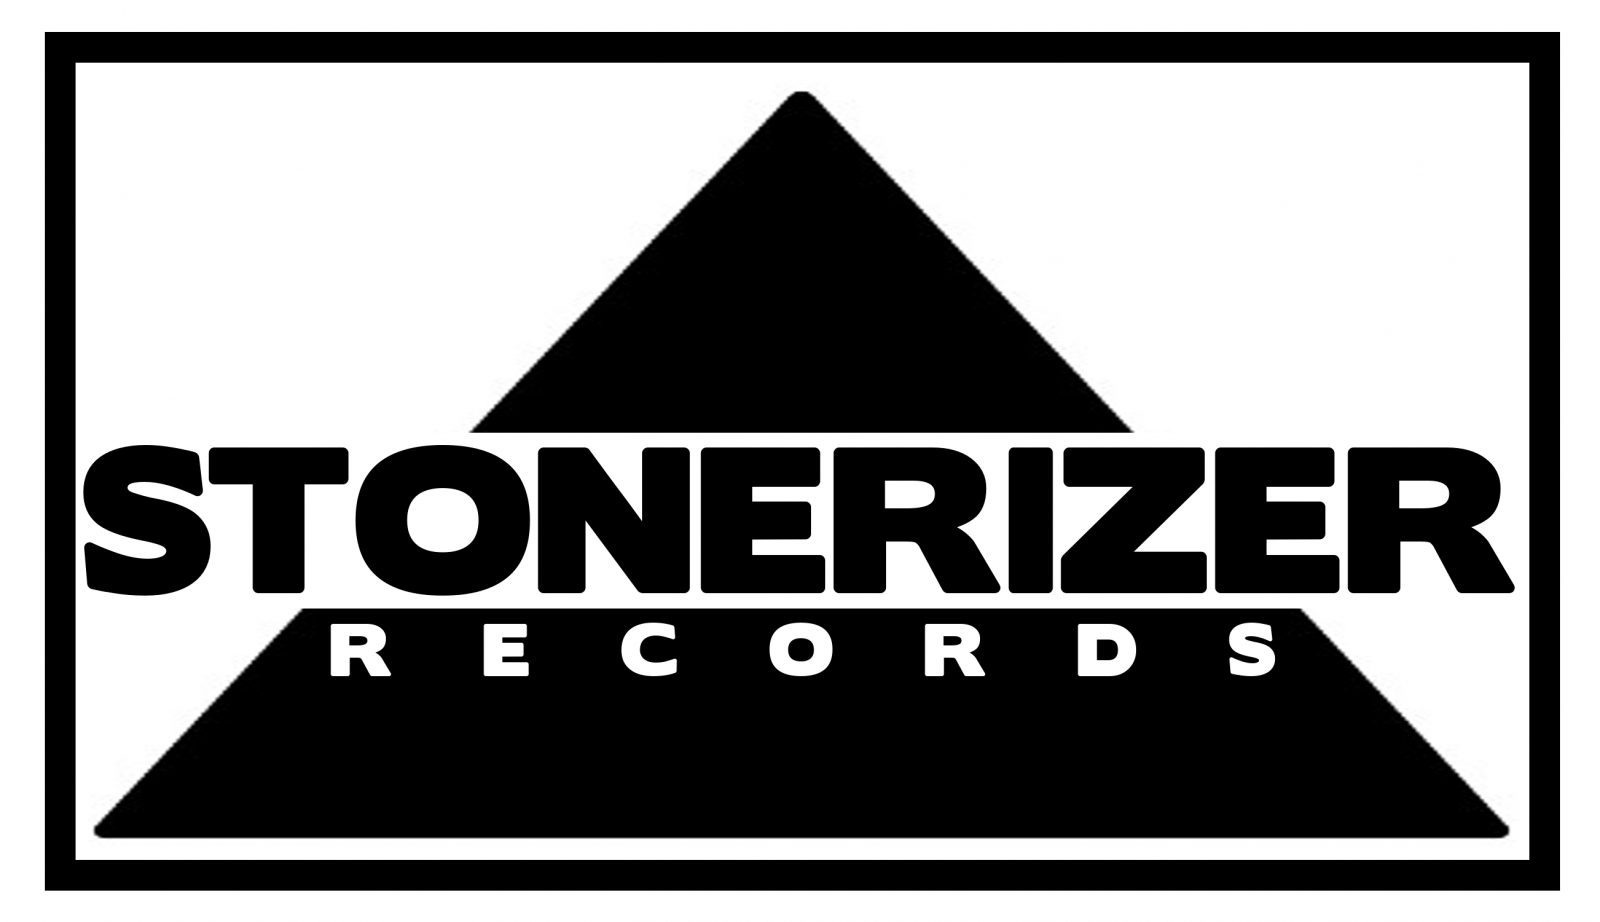 Stonerizer records LOGO